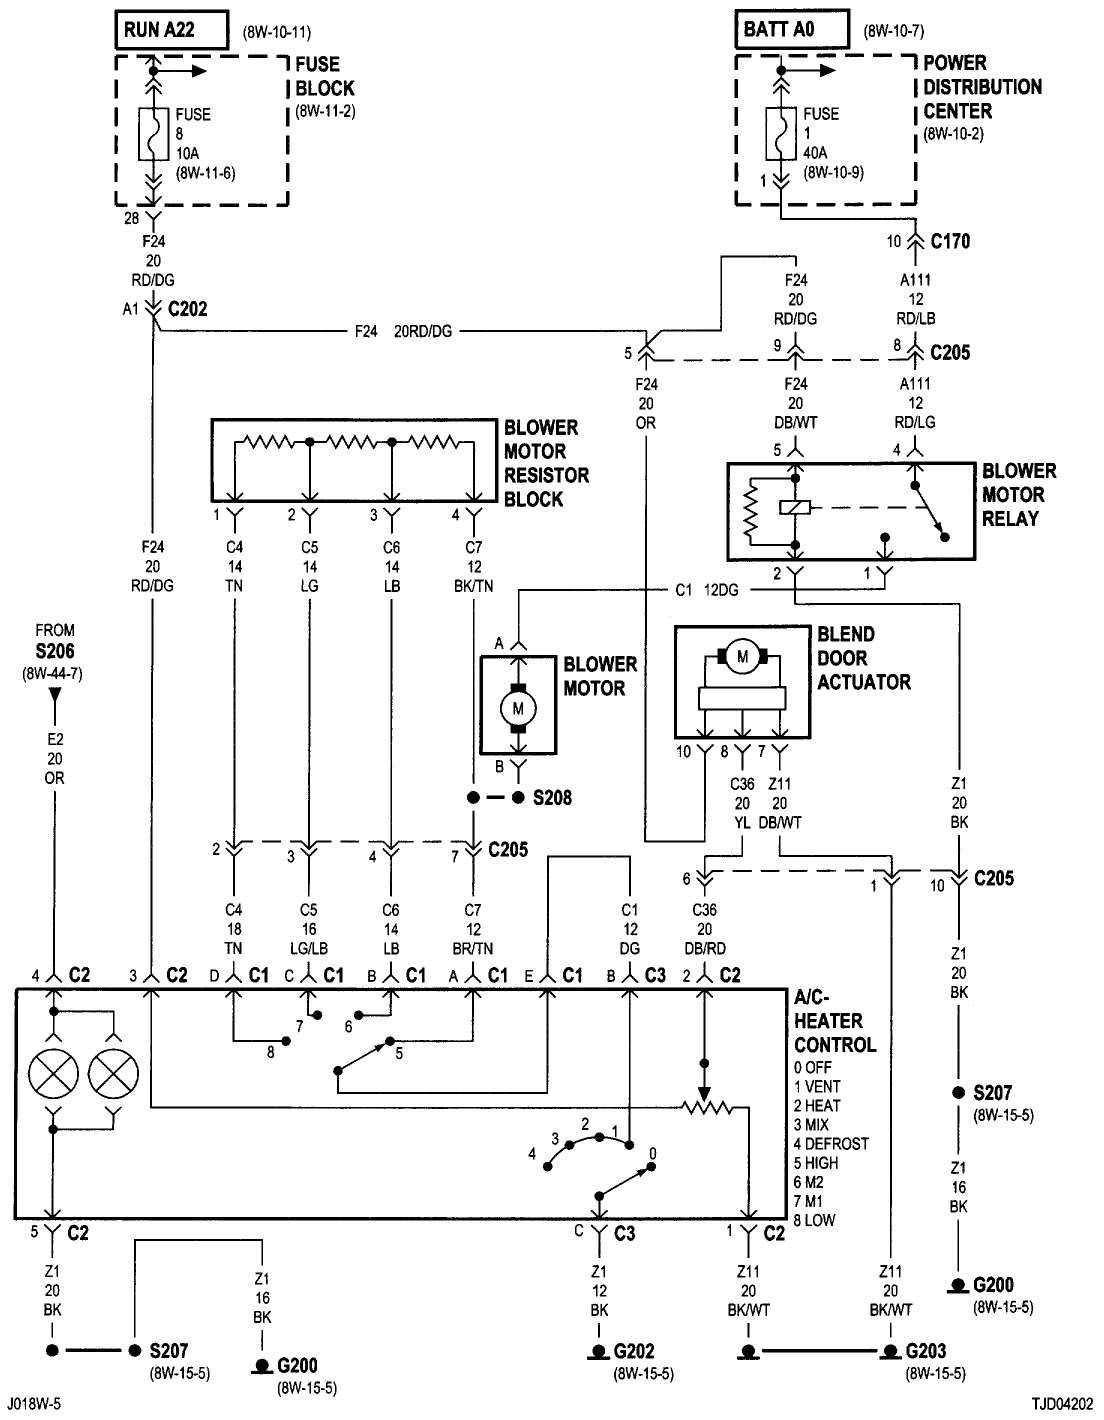 2011 Jeep Grand Cherokee Wiring Diagram in 2021 | Jeep tj, Jeep wrangler,  2002 jeep wranglerPinterest